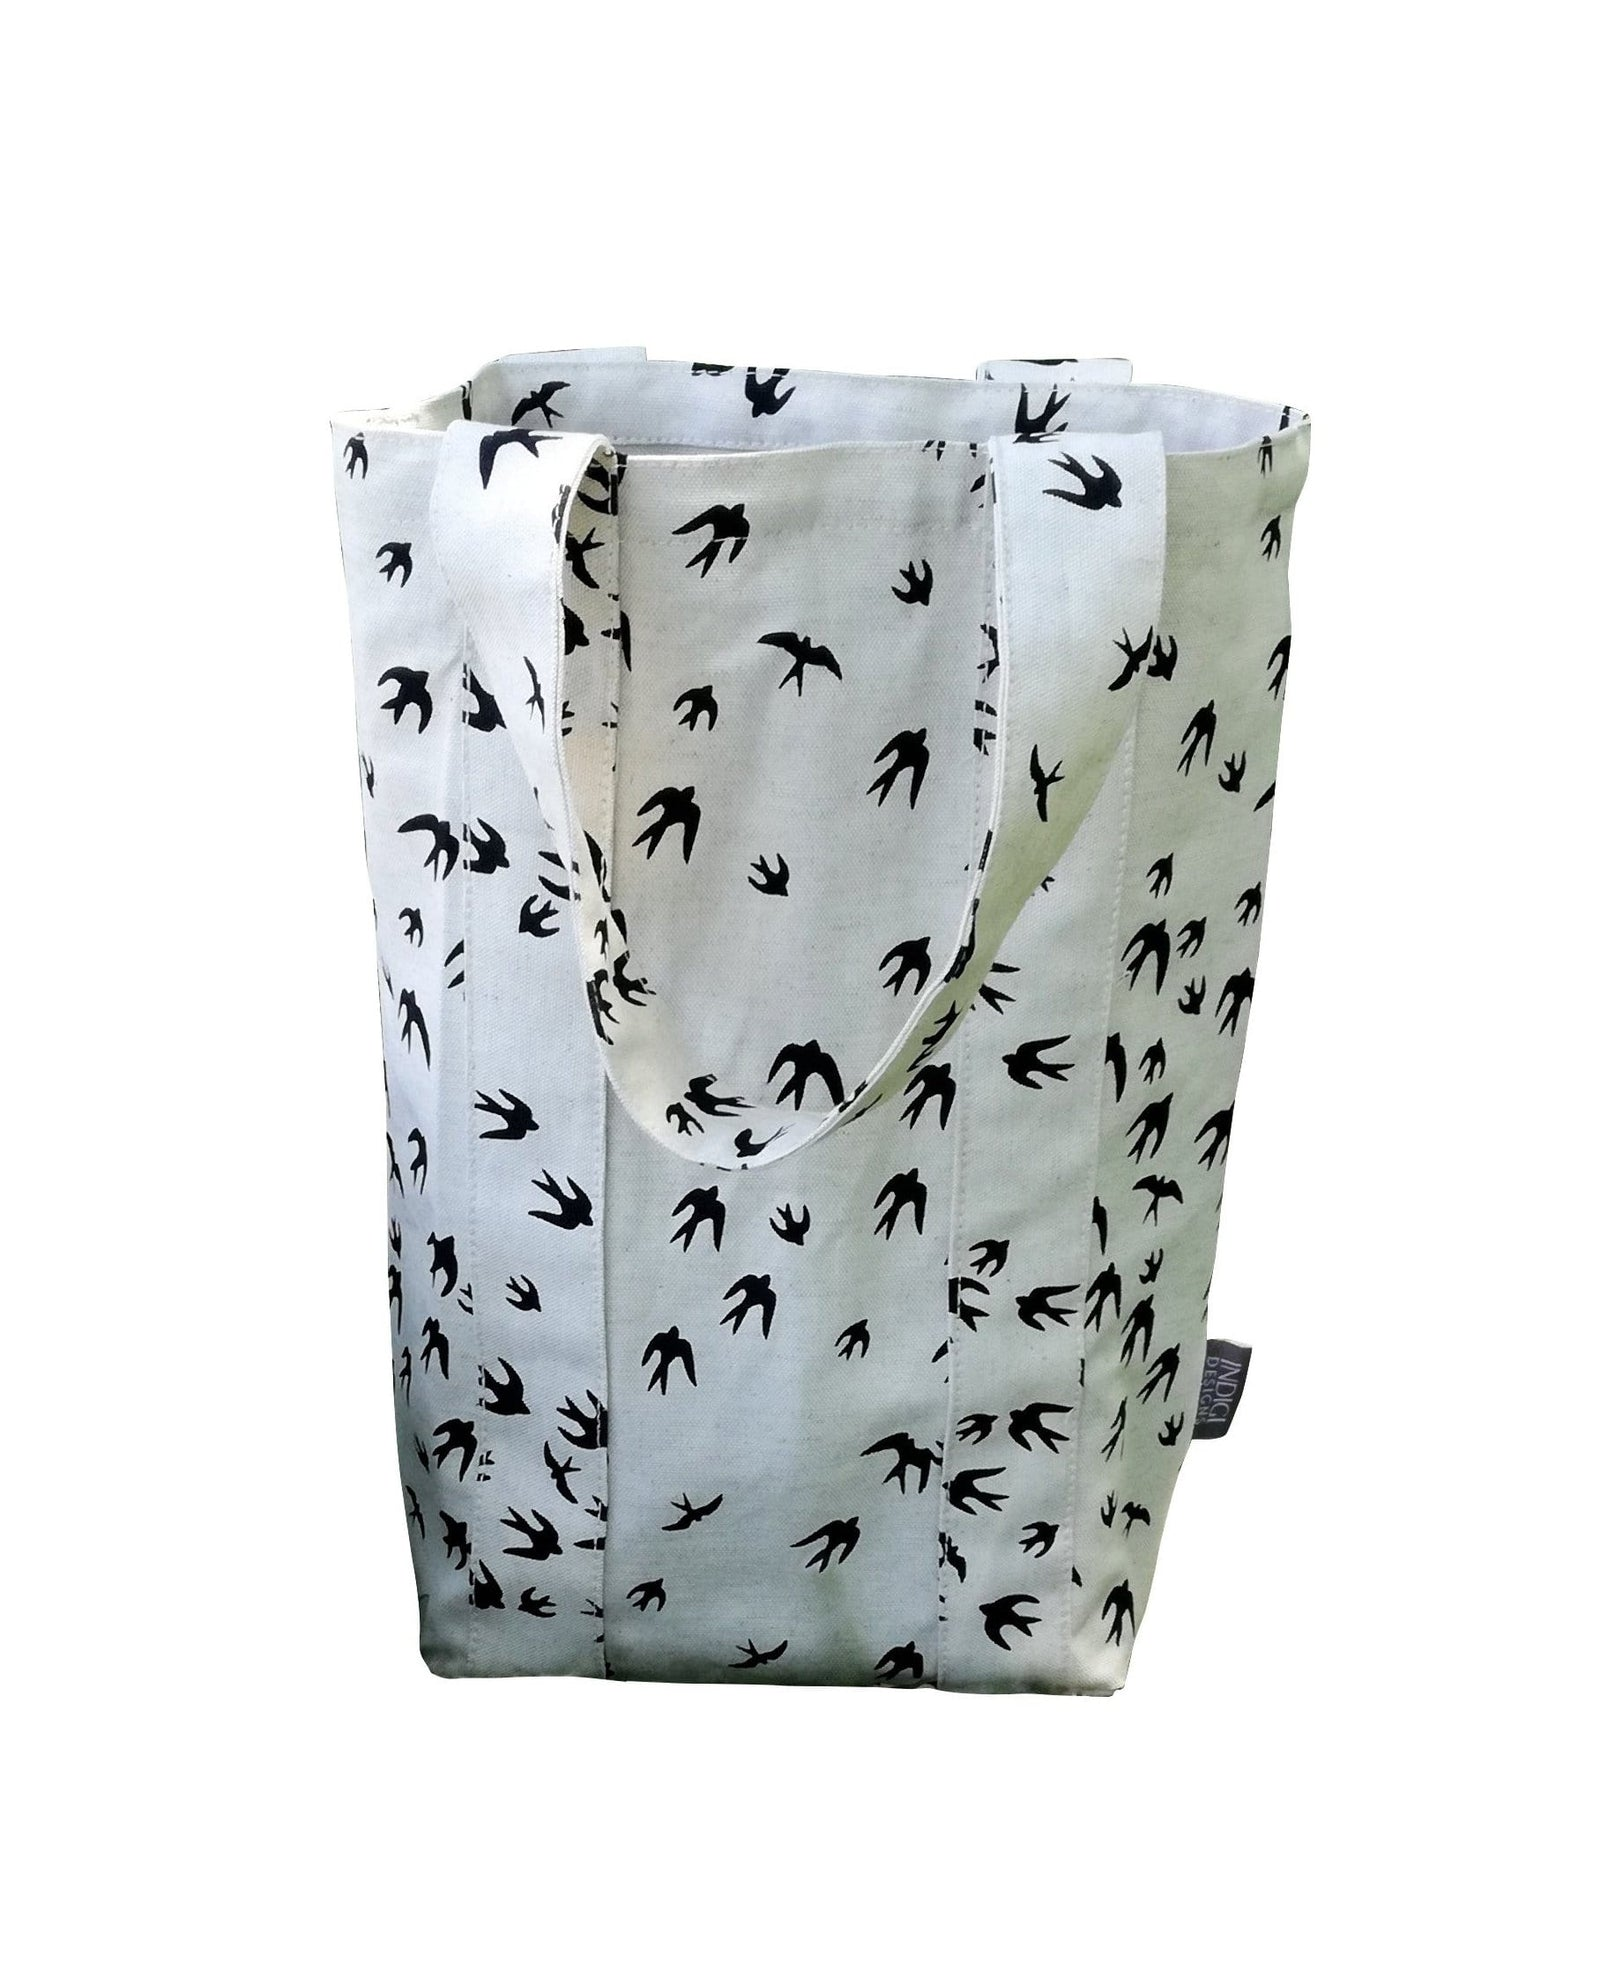 Drinks Carrier in Birds Design